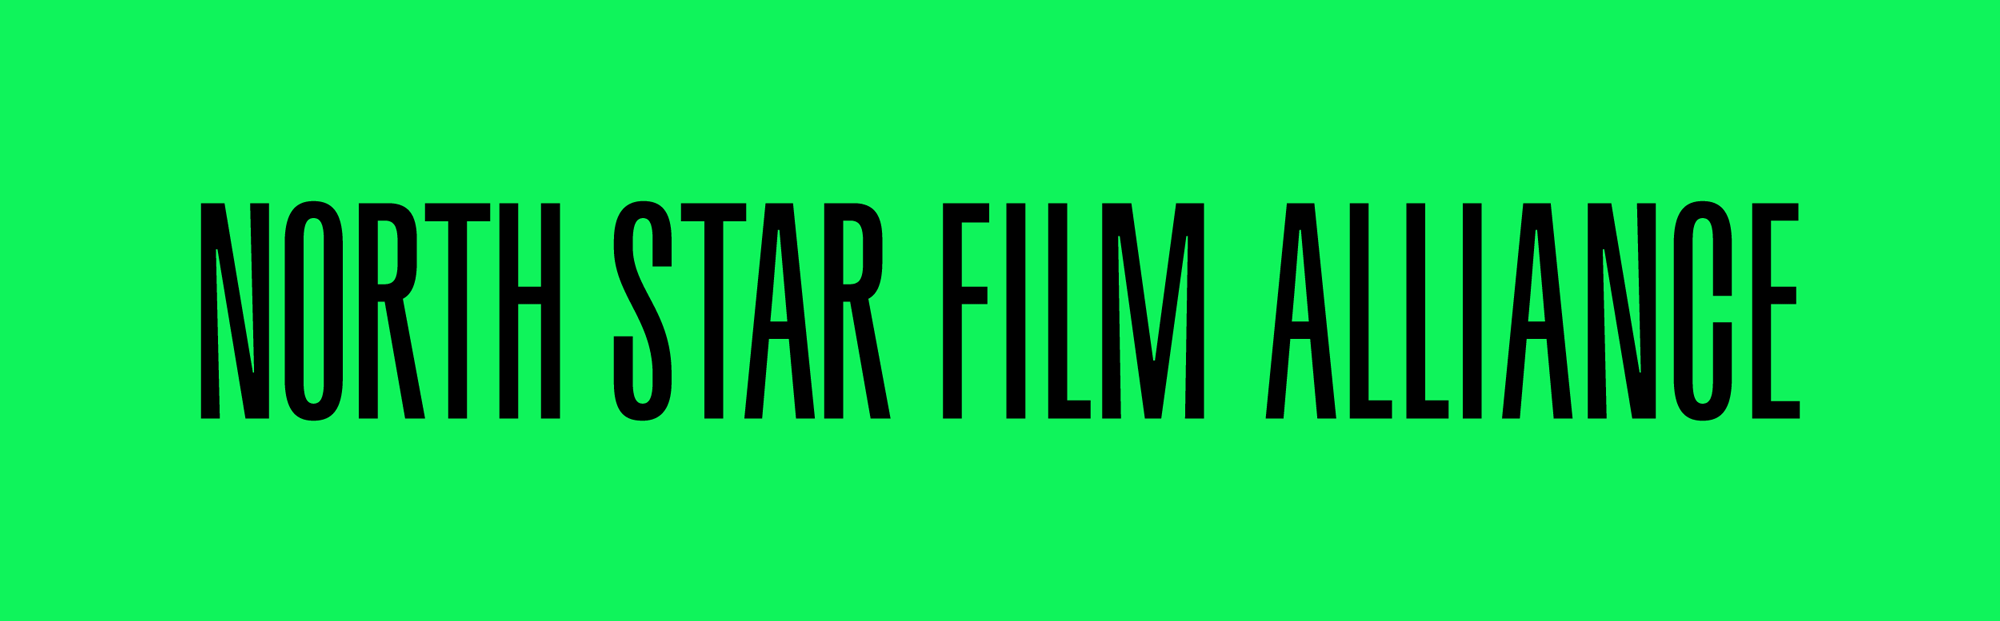 New Logo and Identity for North Star Film Alliance by BOND